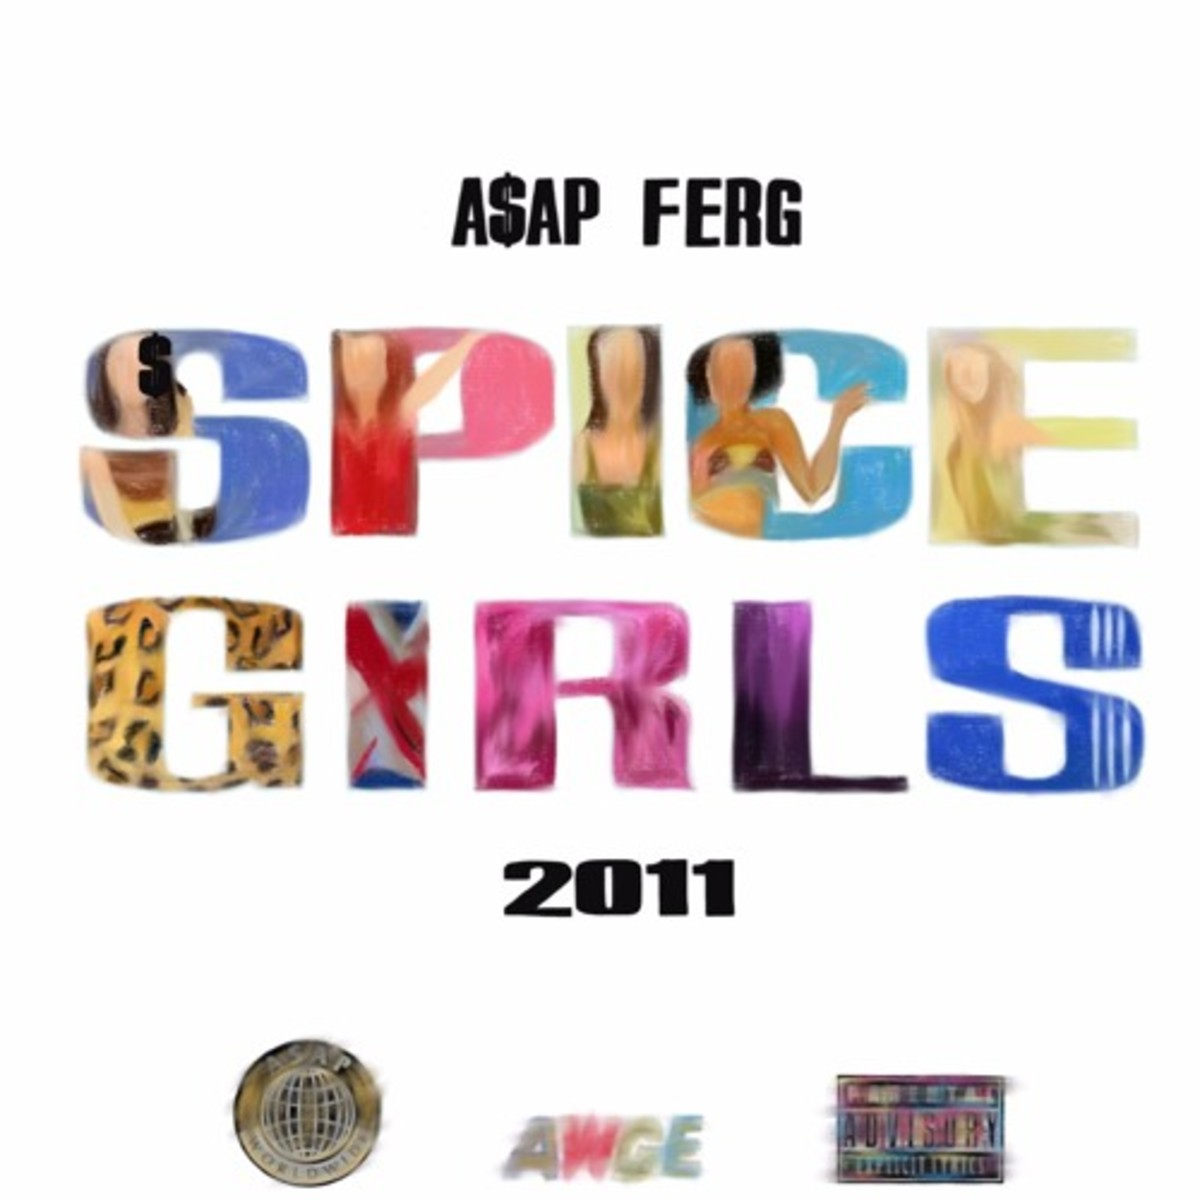 asap-ferg-spice-girls.jpg